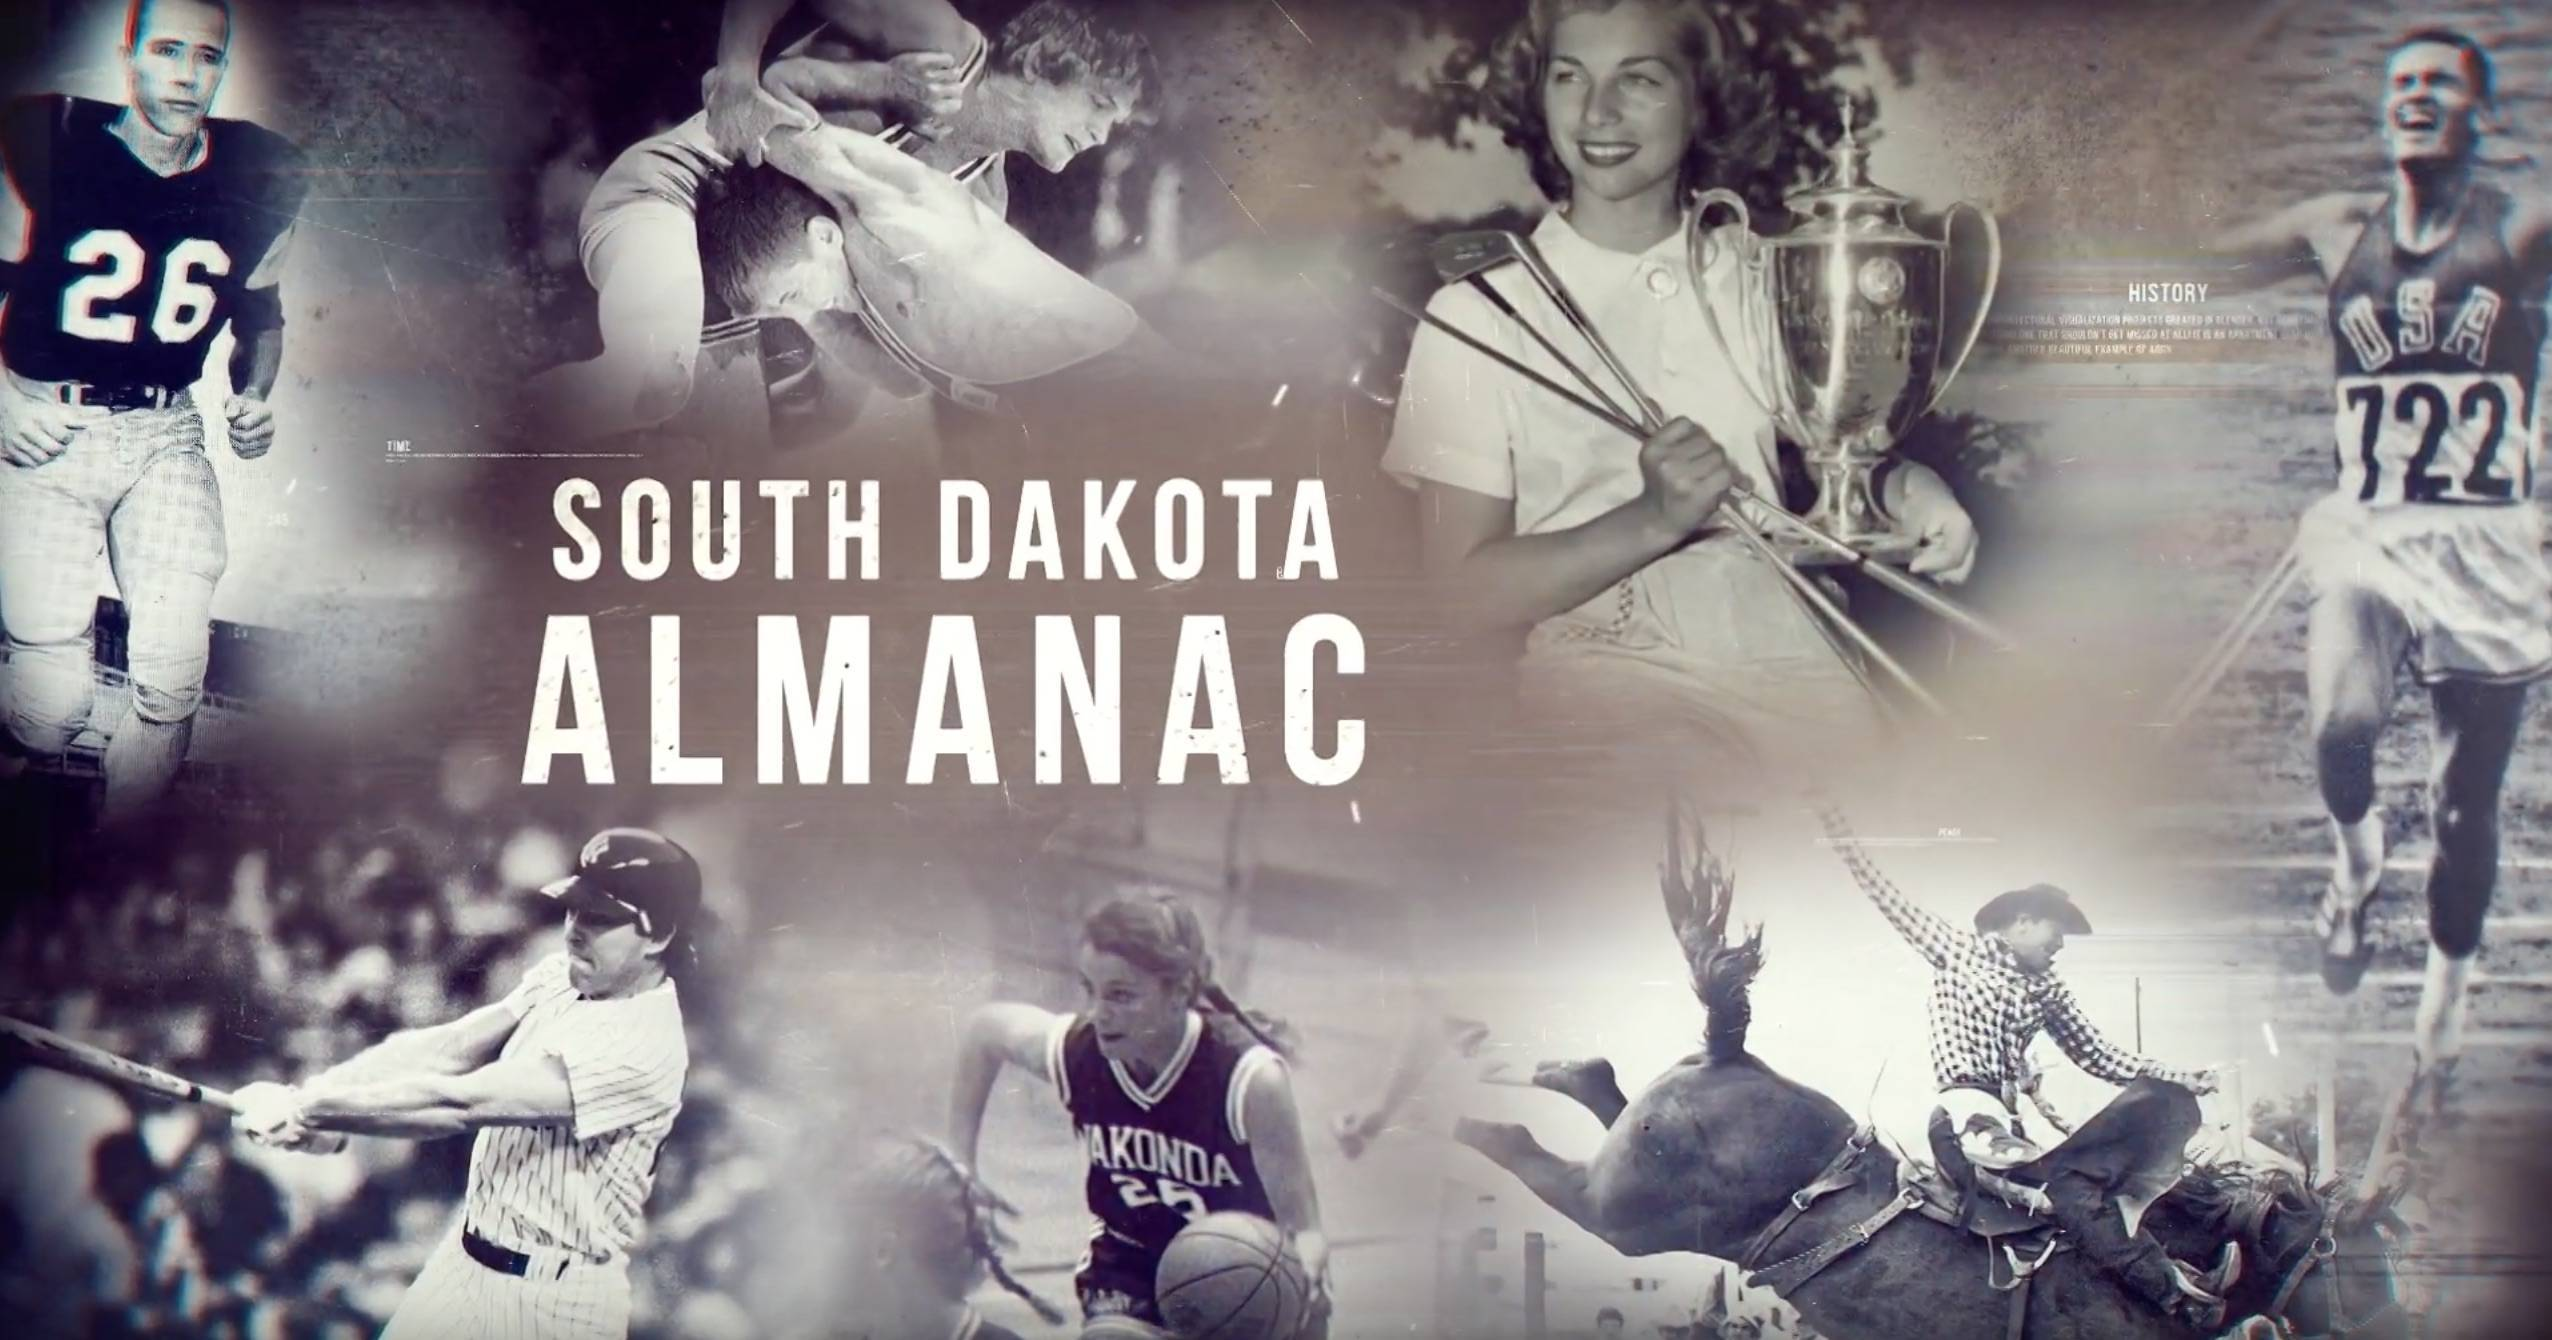 South Dakota Almanac